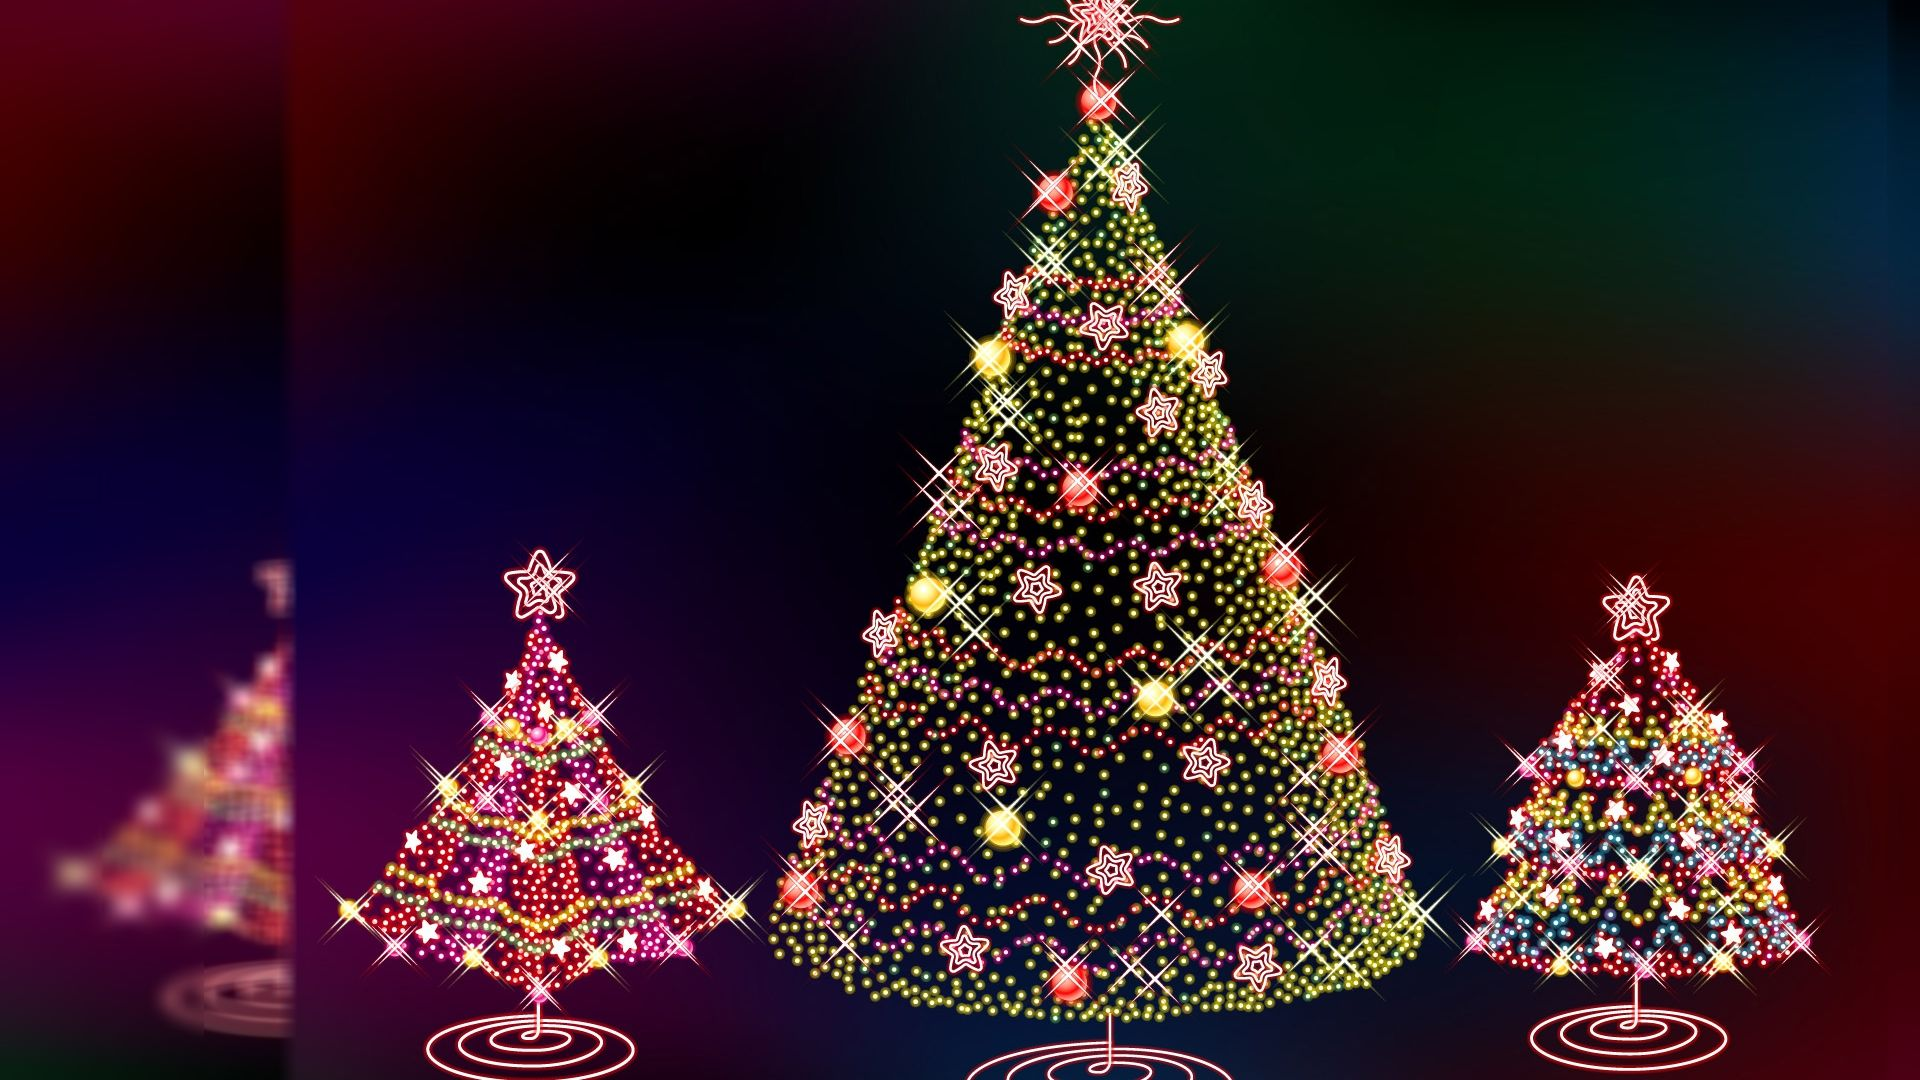 Christmas Wallpaper for Desktop | Wallpapers9 | CHRISTMAS ...